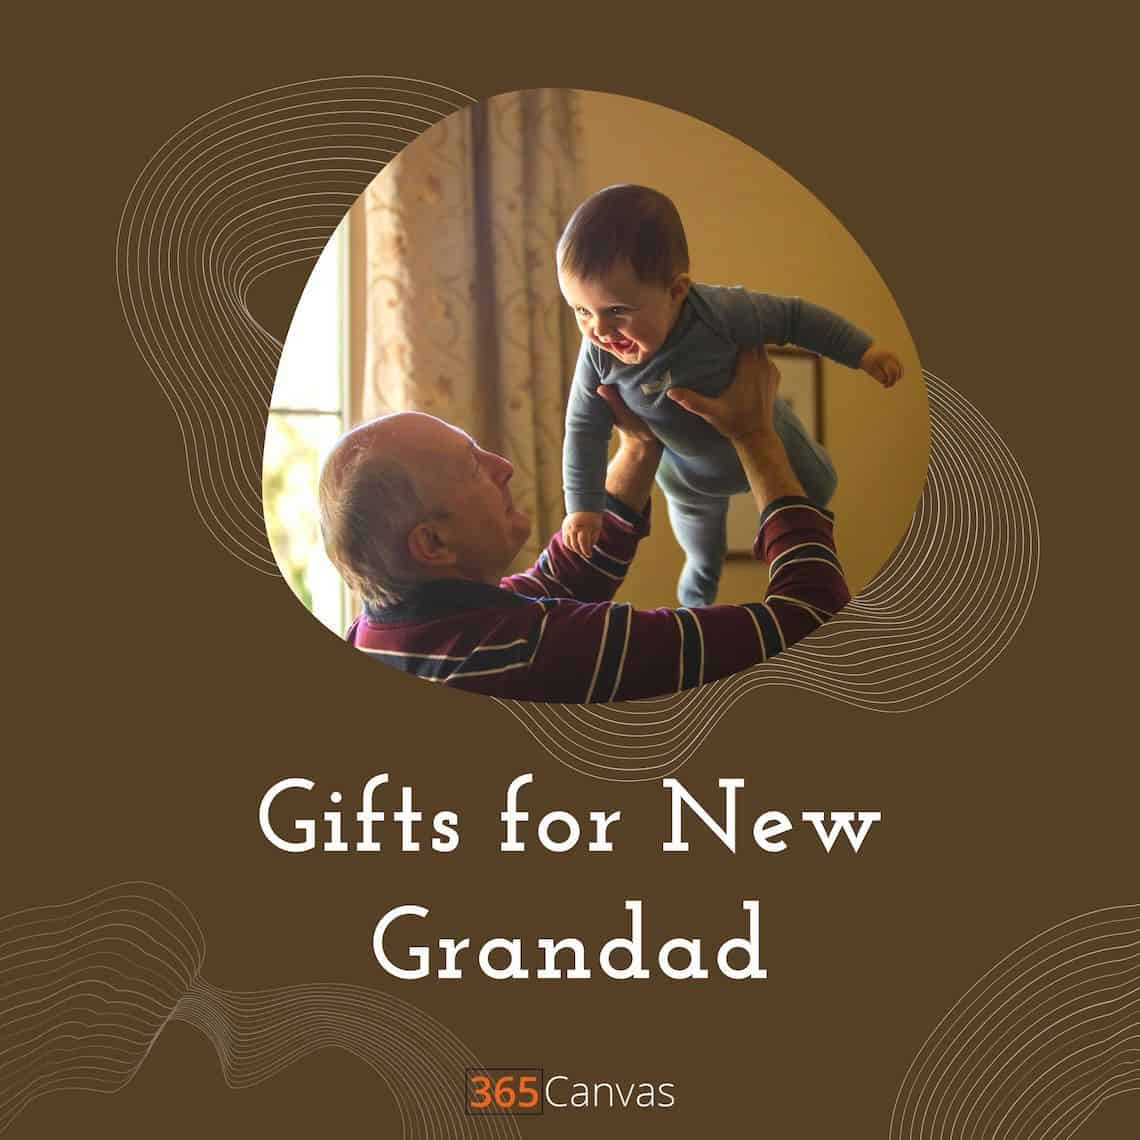 New Grandad Gifts: 17 Gift Ideas to Celebrate Their New Role (2021)